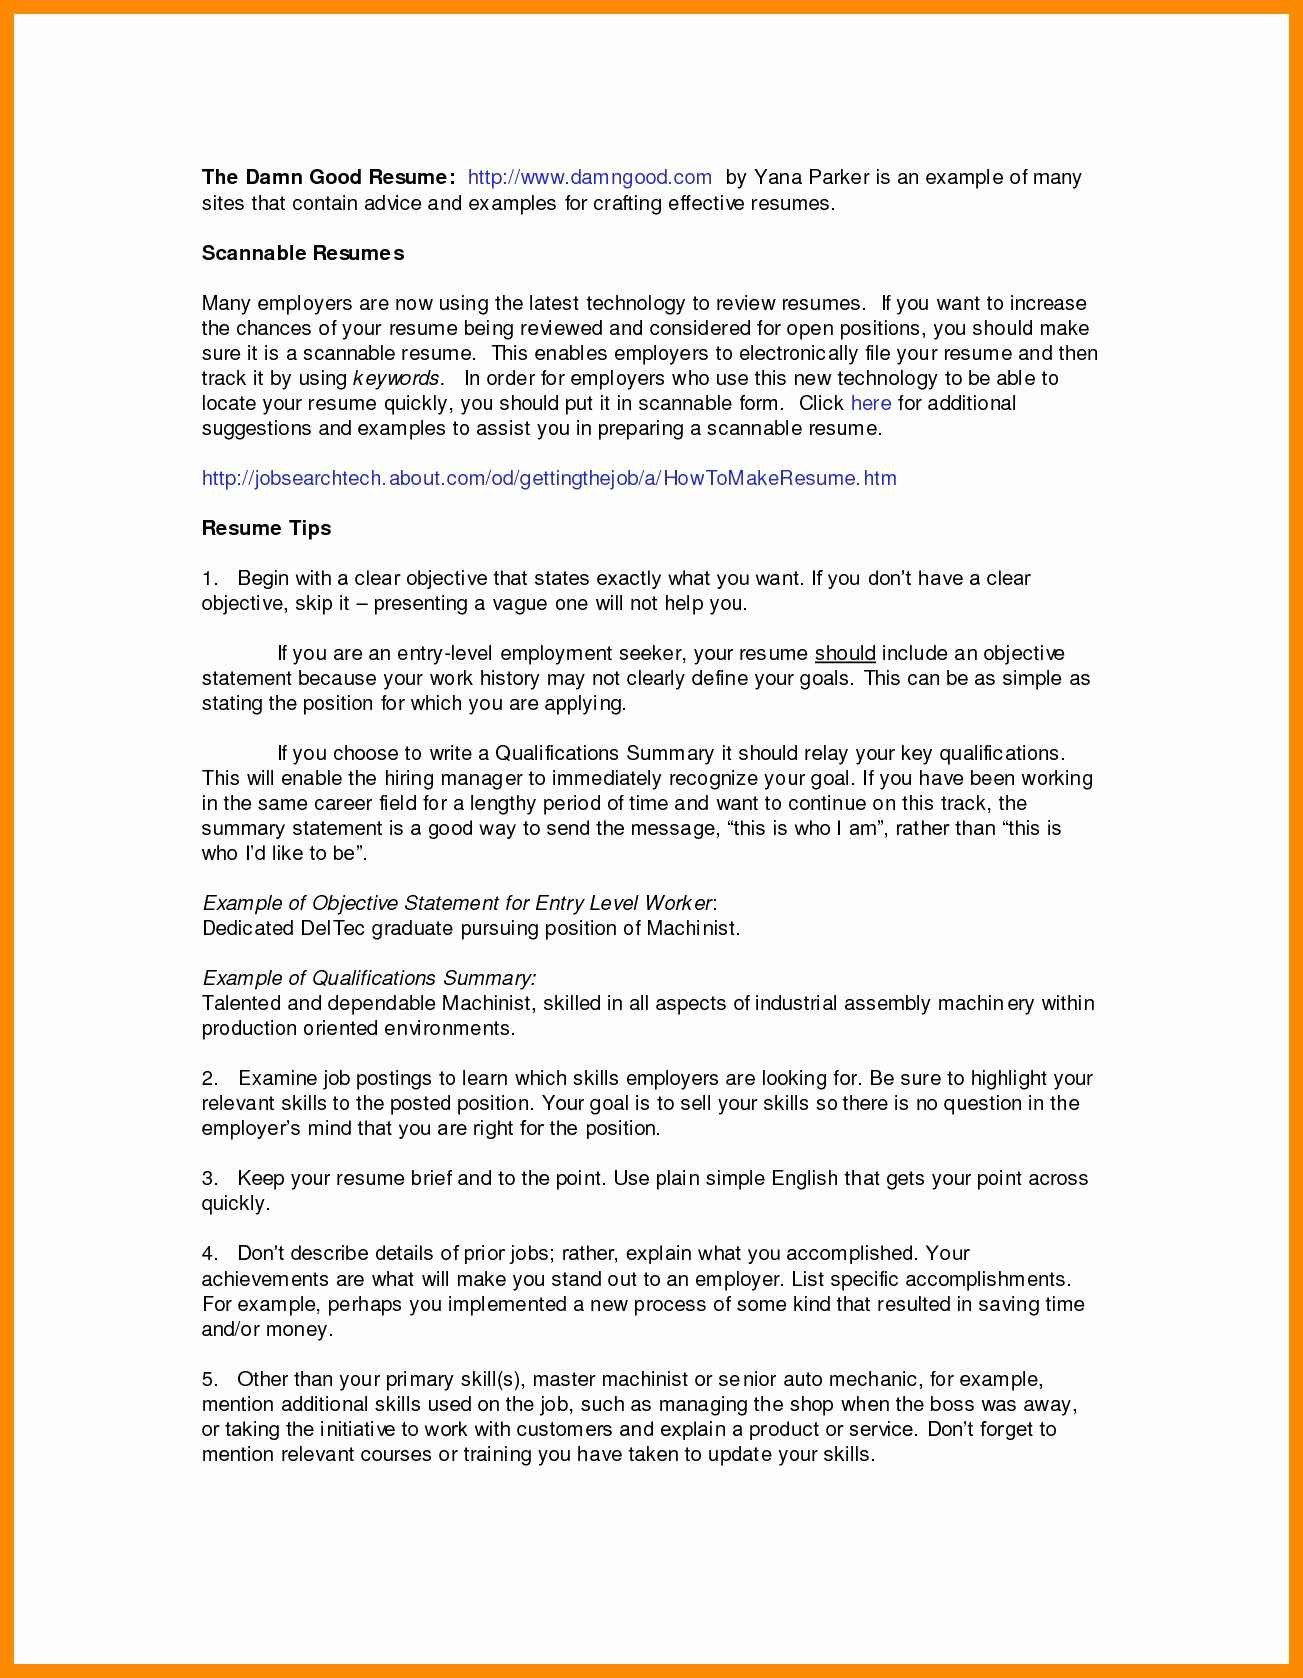 dental assistant resumes no experience Collection-Dental assistant Resume with No Experience 1-m